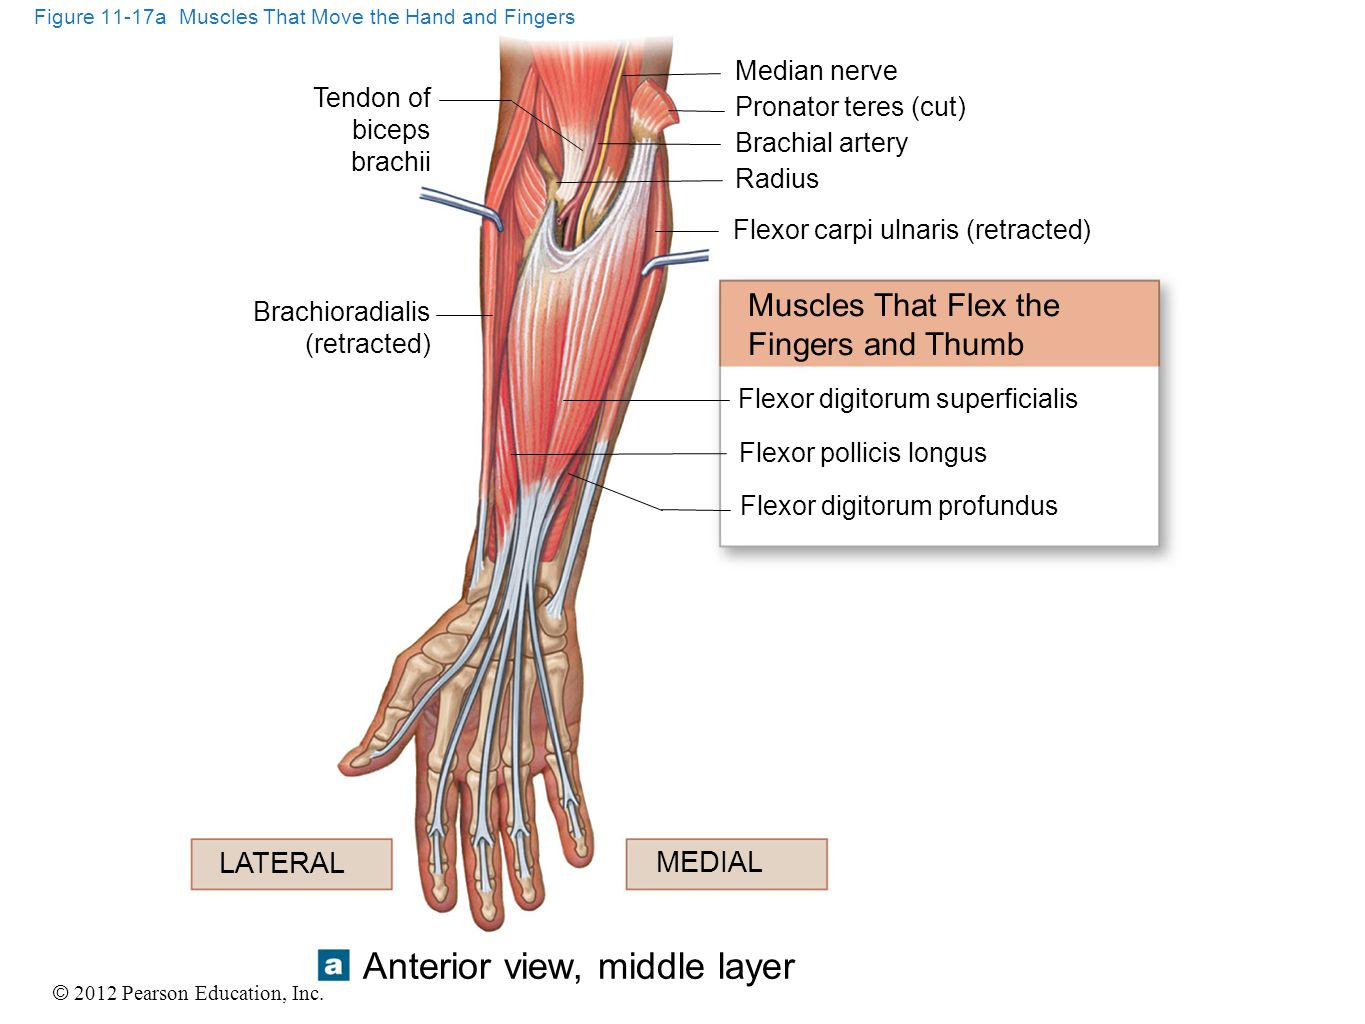 Figure 11-17a Muscles That Move the Hand and Fingers